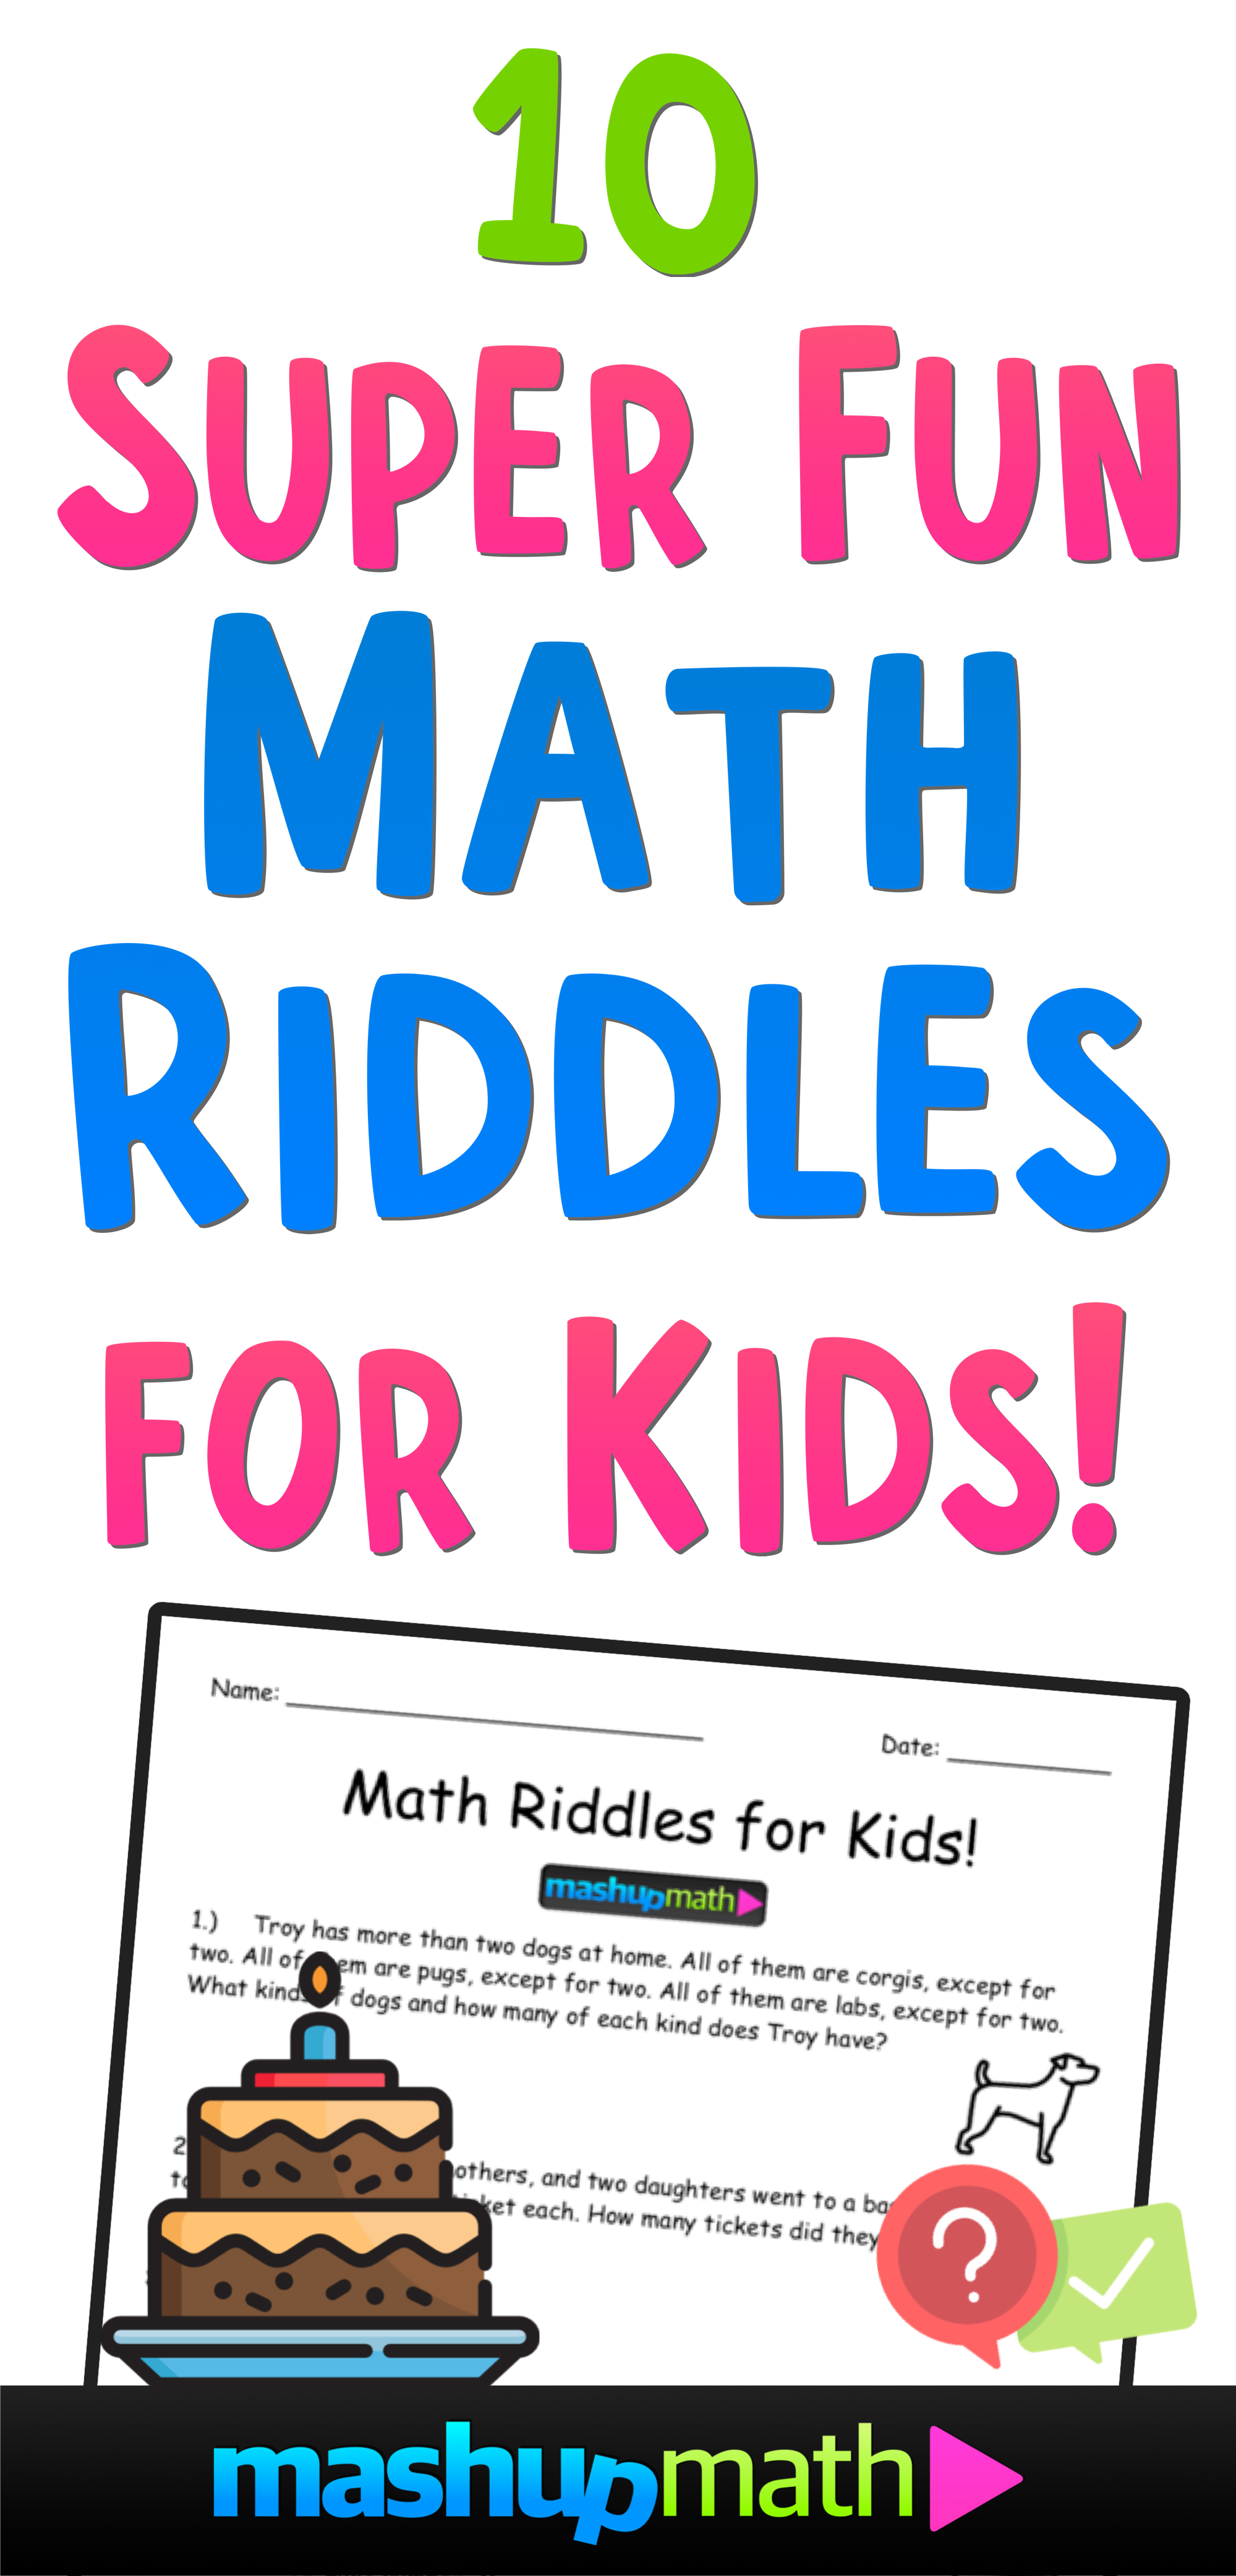 photograph about Printable Riddles for Kids called 10 Tremendous Enjoyable Math Riddles for Little ones (with Methods) Mashup Math